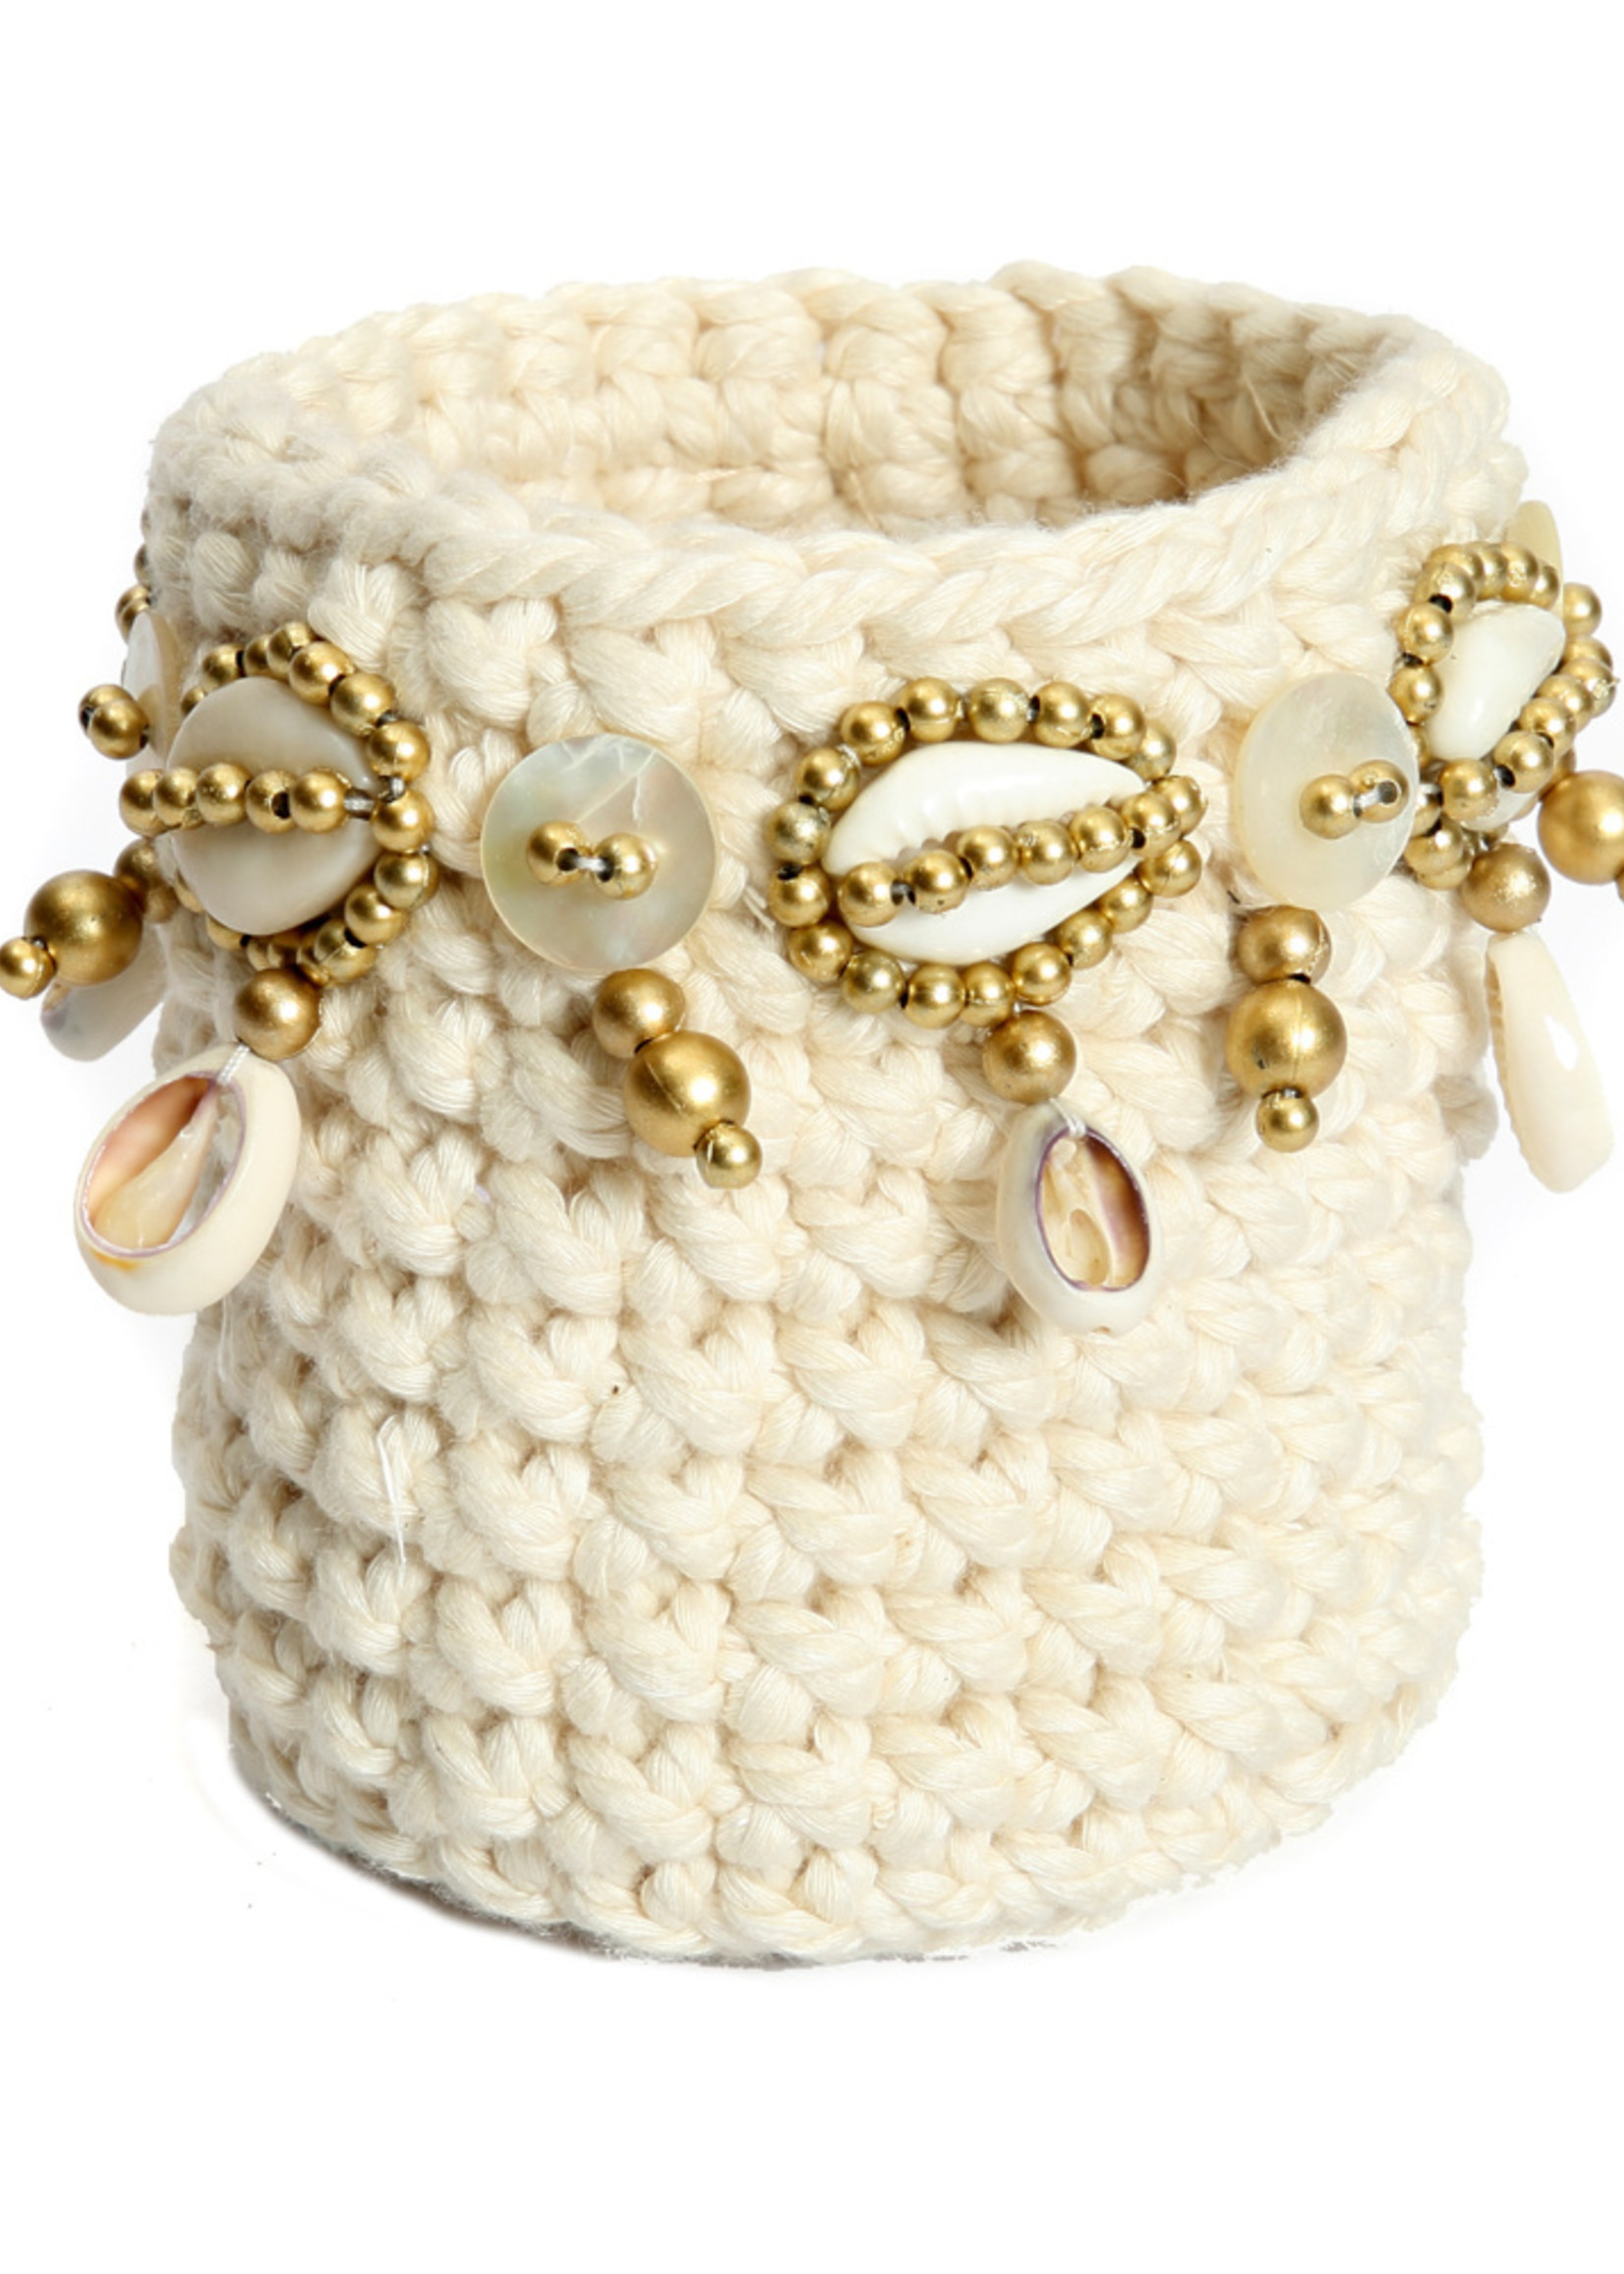 The Gold Macrame Candle Holder - Natural - S